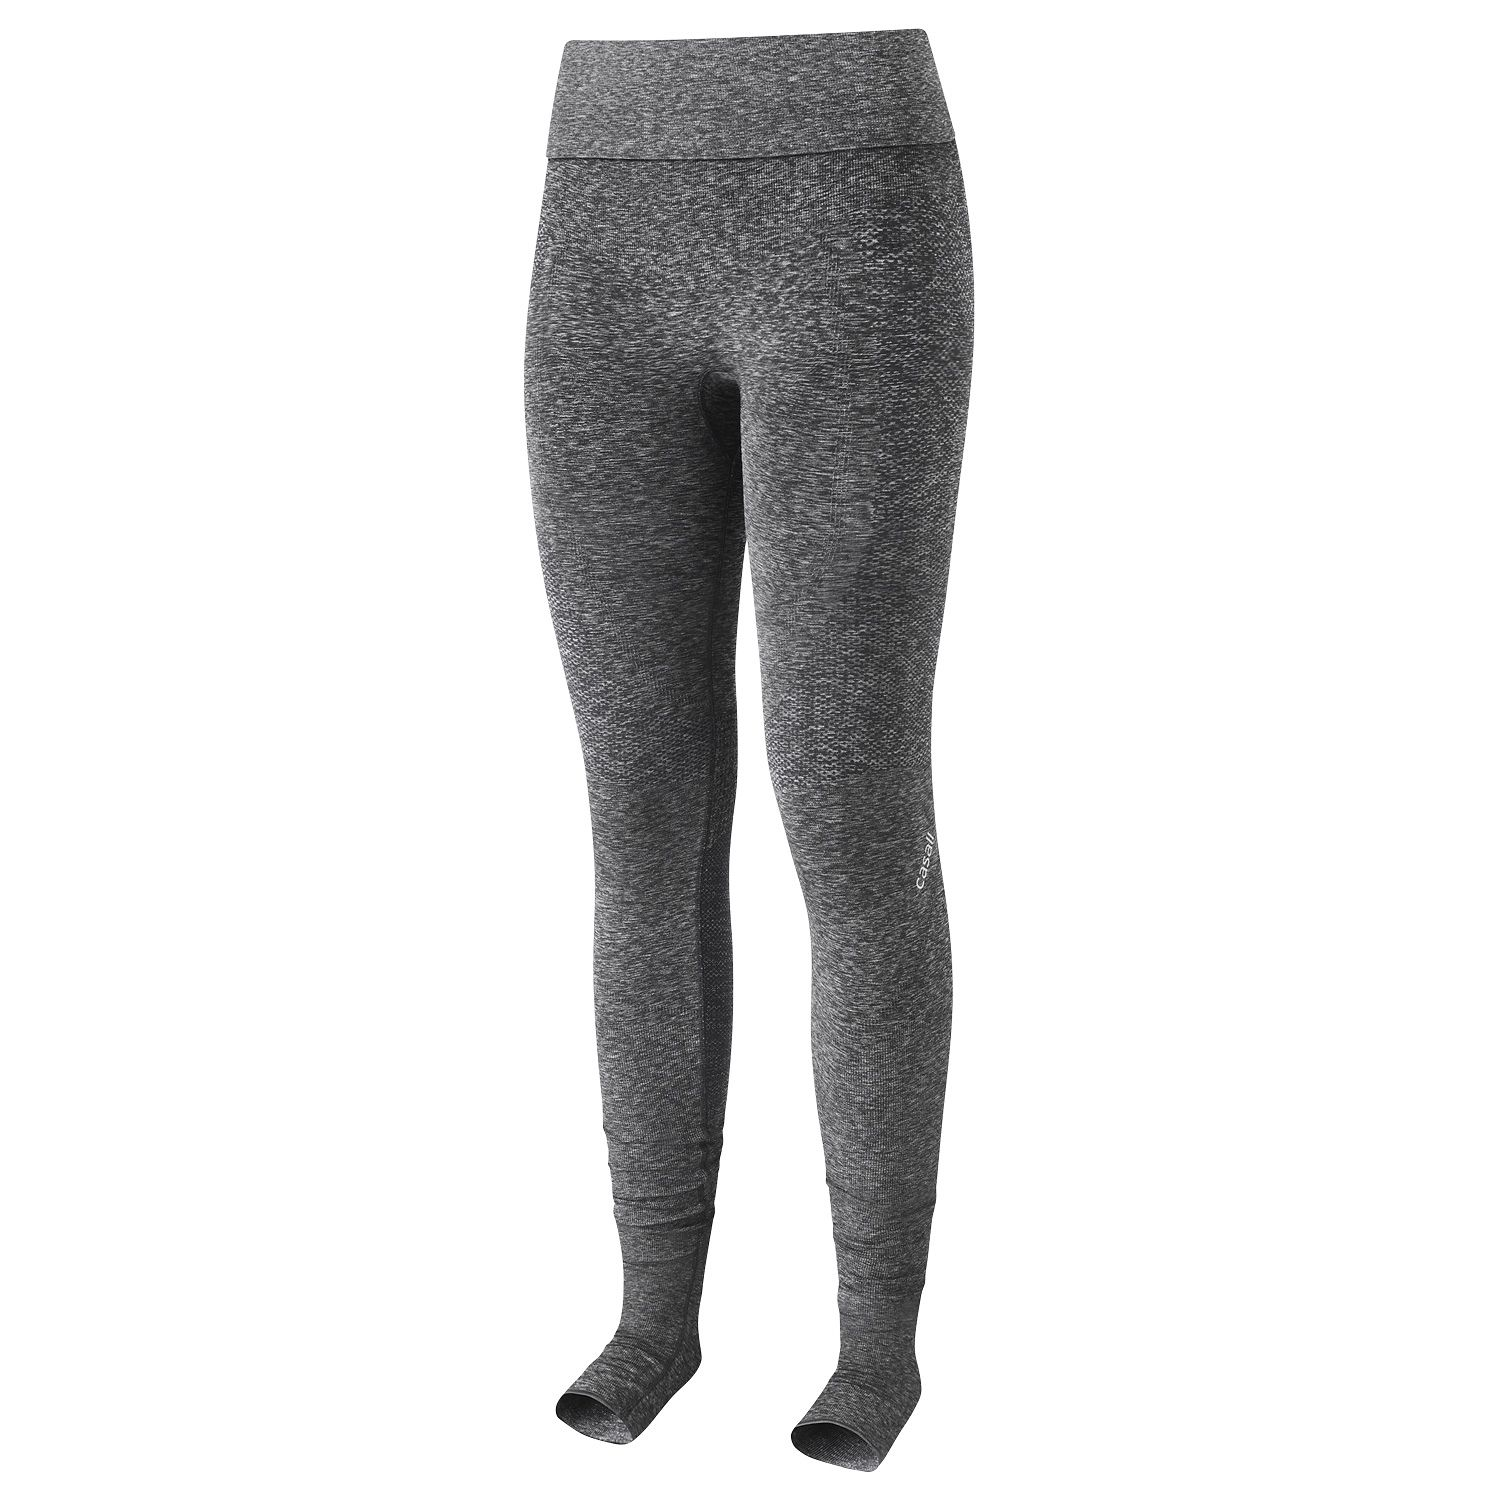 Casall Refined long leg tights- den optimale tightsen for yoga